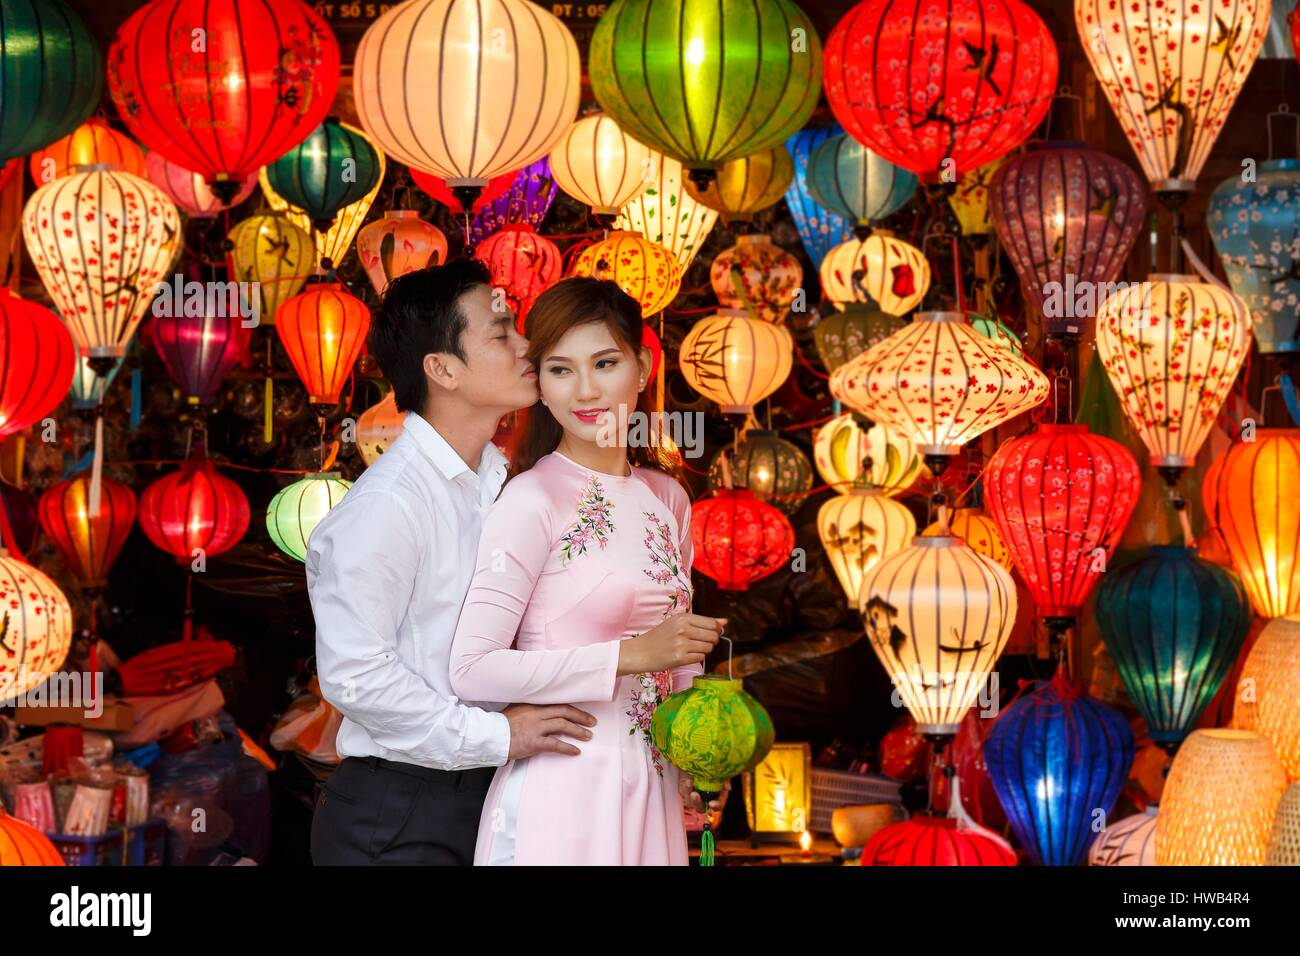 Vietnam, Quang Nam Province, Hoi An, newlyweds surrounded by chinese lanterns - Stock Image